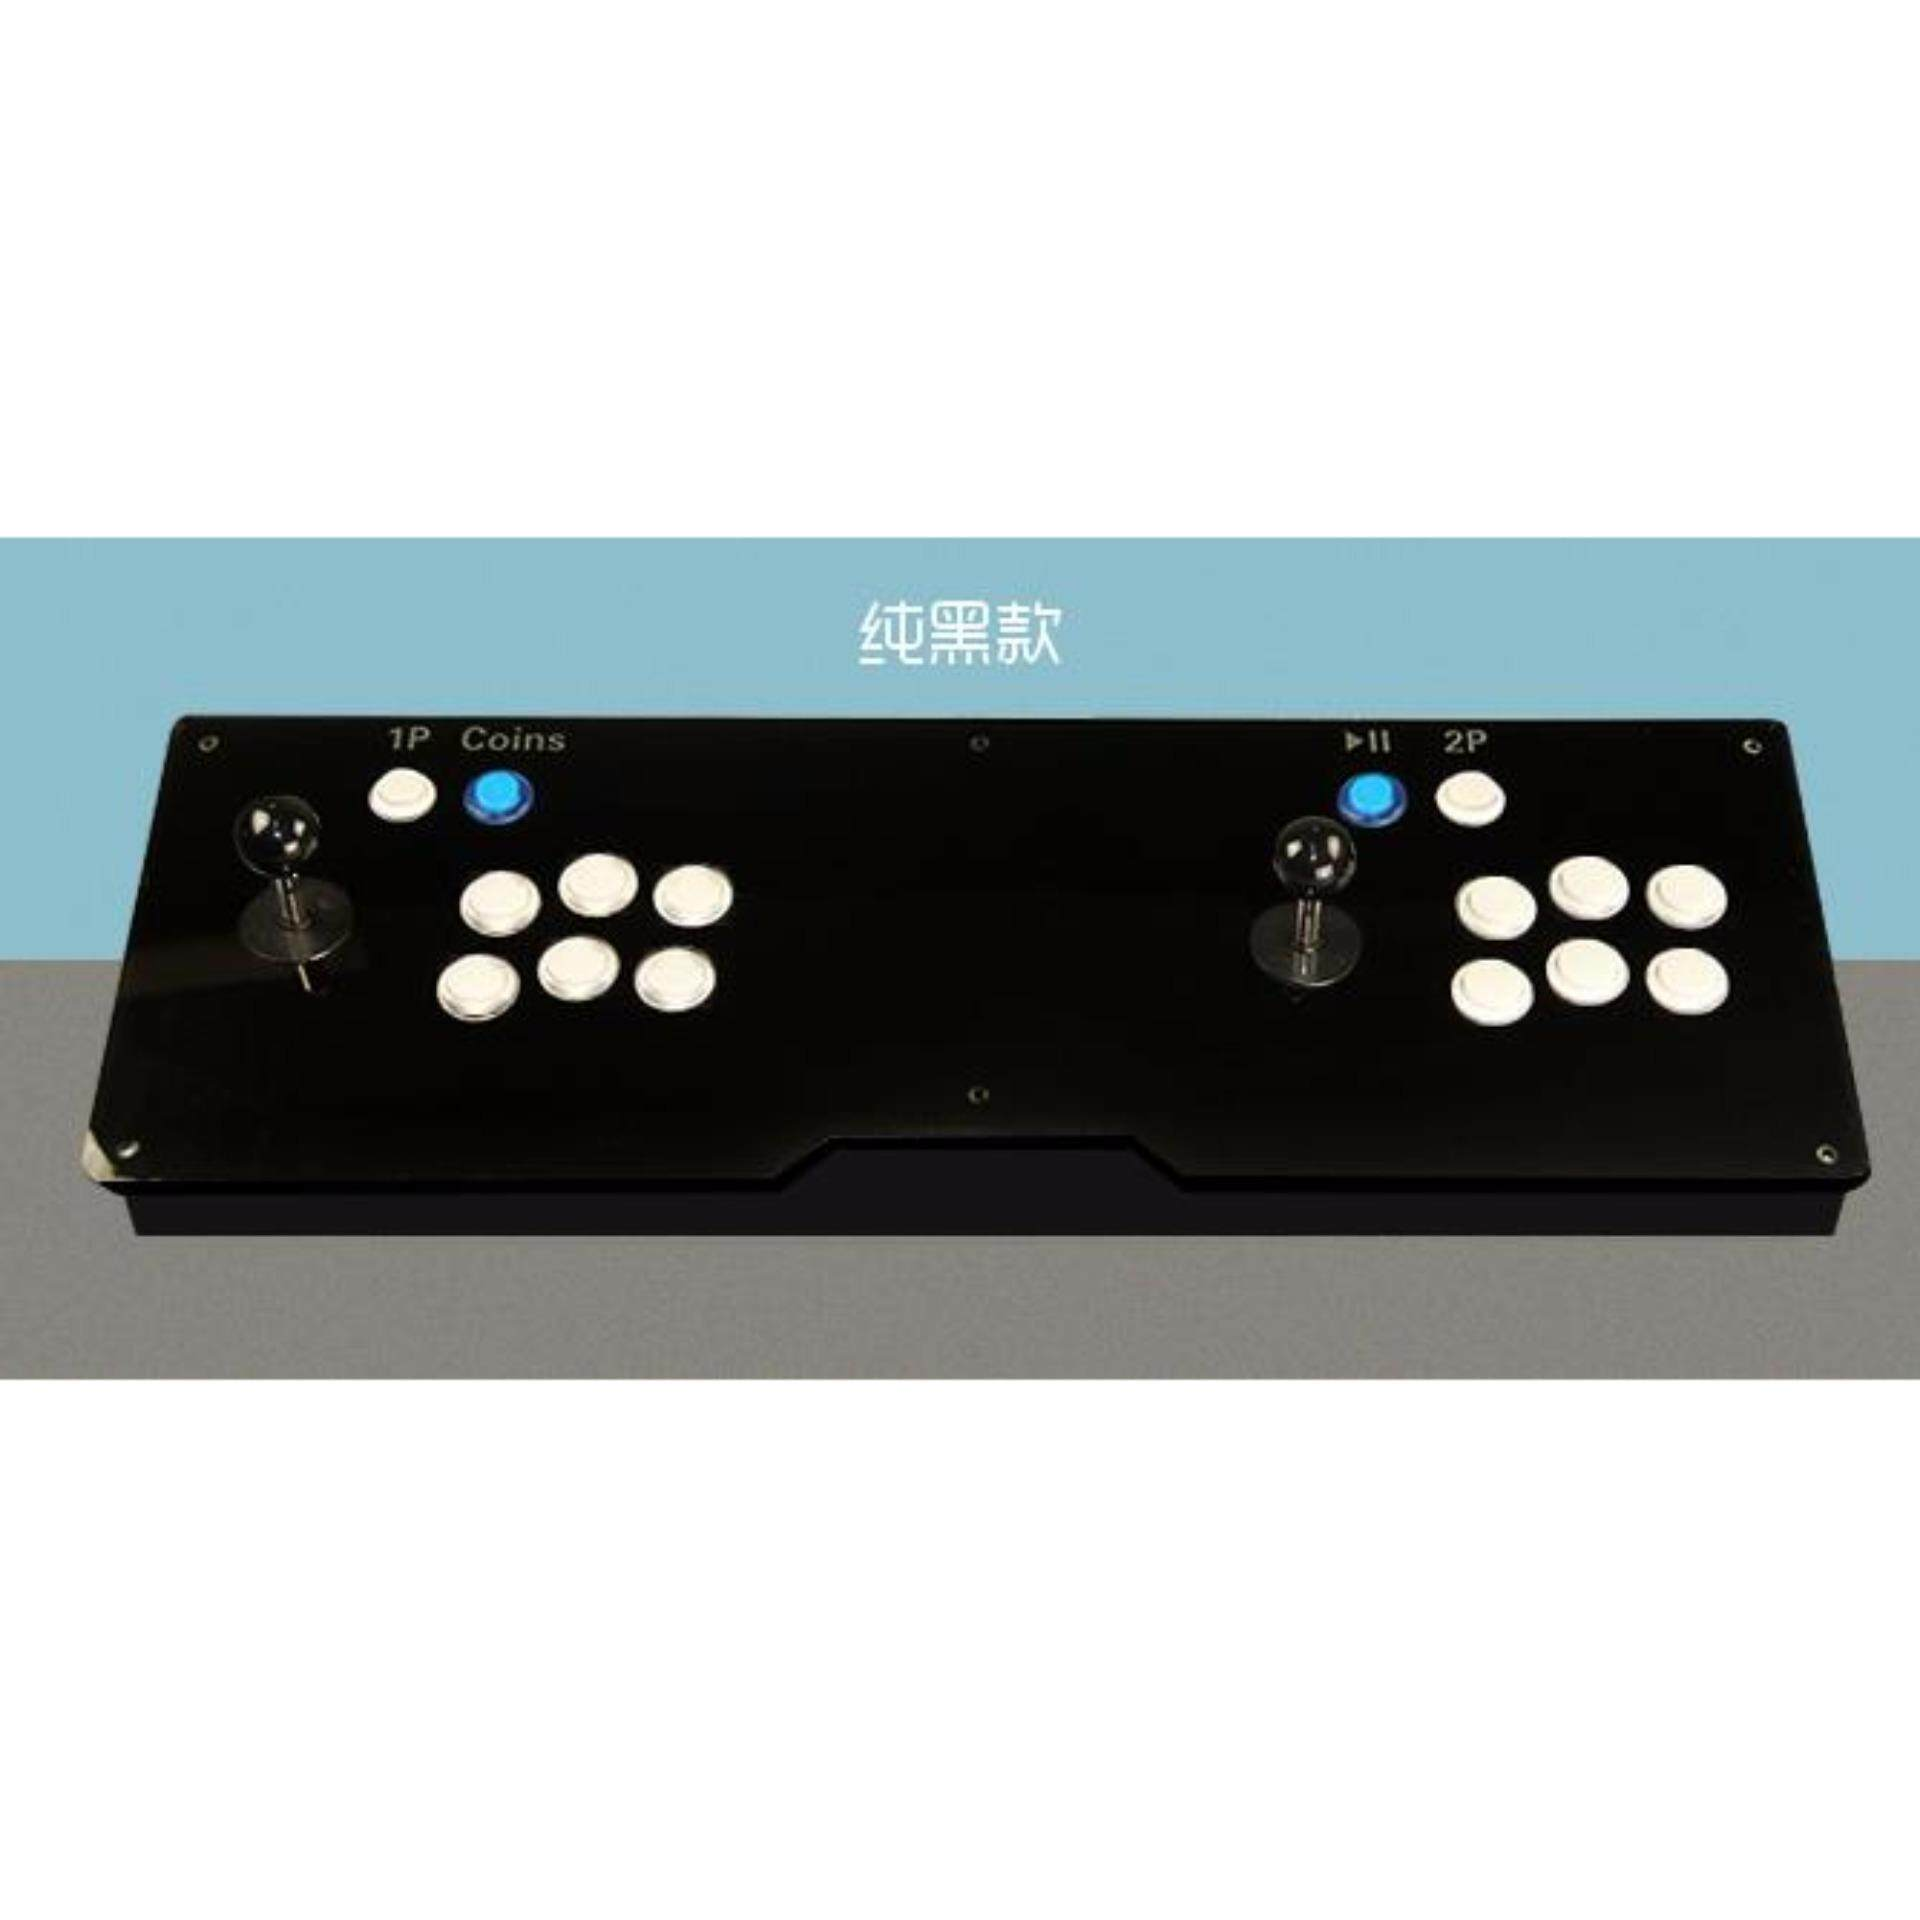 Pandora Box 4s HD 680 Games 2Player Multigame JAMMA Boards Arcade Joystick Consoles (HDMI CGA , USB & VGA output)